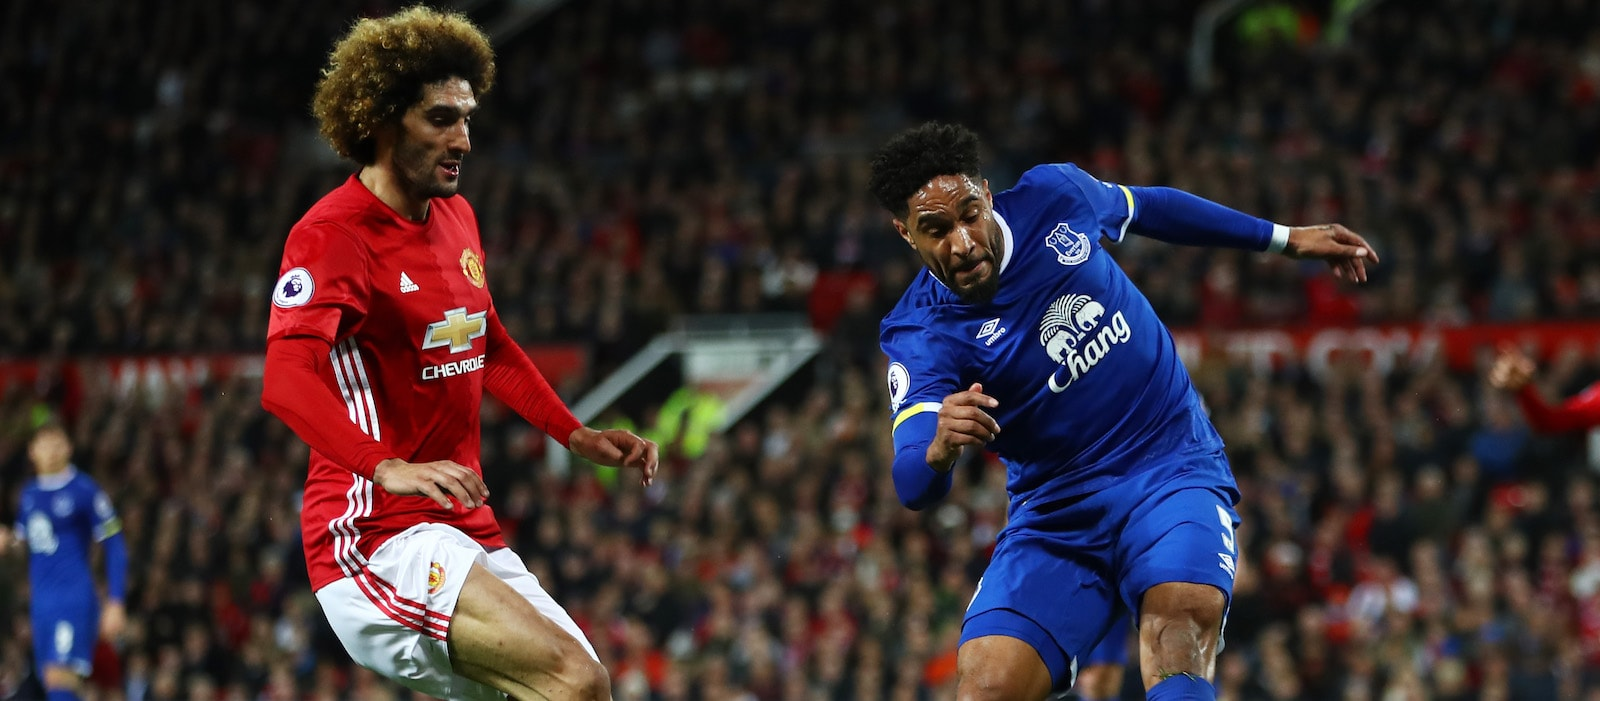 Manchester United fans full of praise for Marouane Fellaini's performance against Chelsea